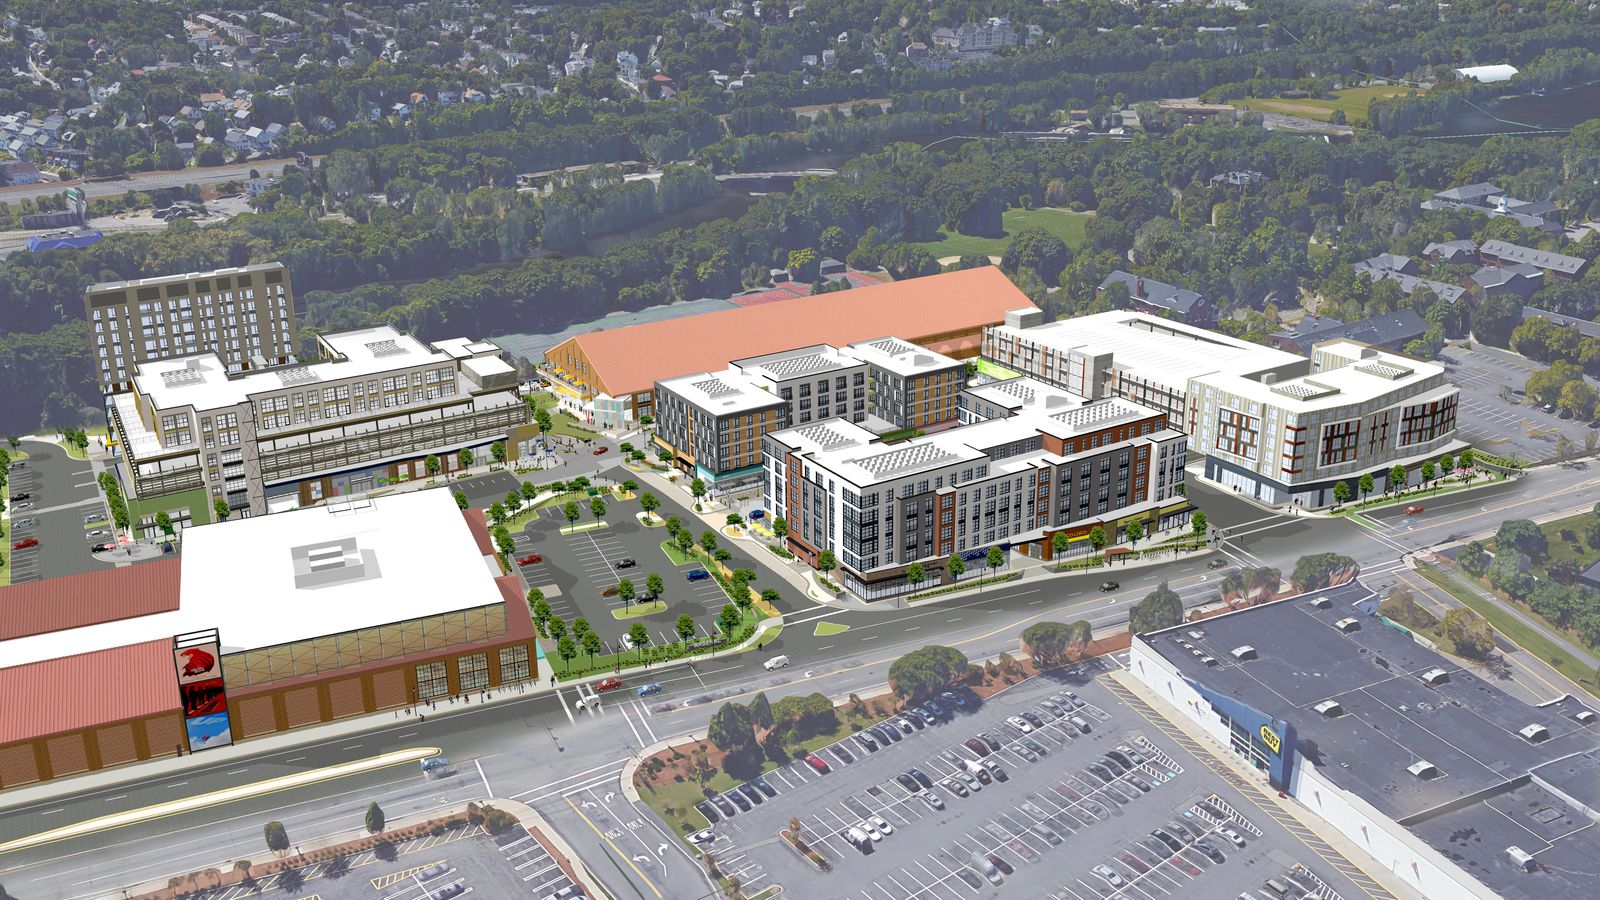 Watertown S Arsenal Yards Mega Project Wins Key Approval Curbed Boston